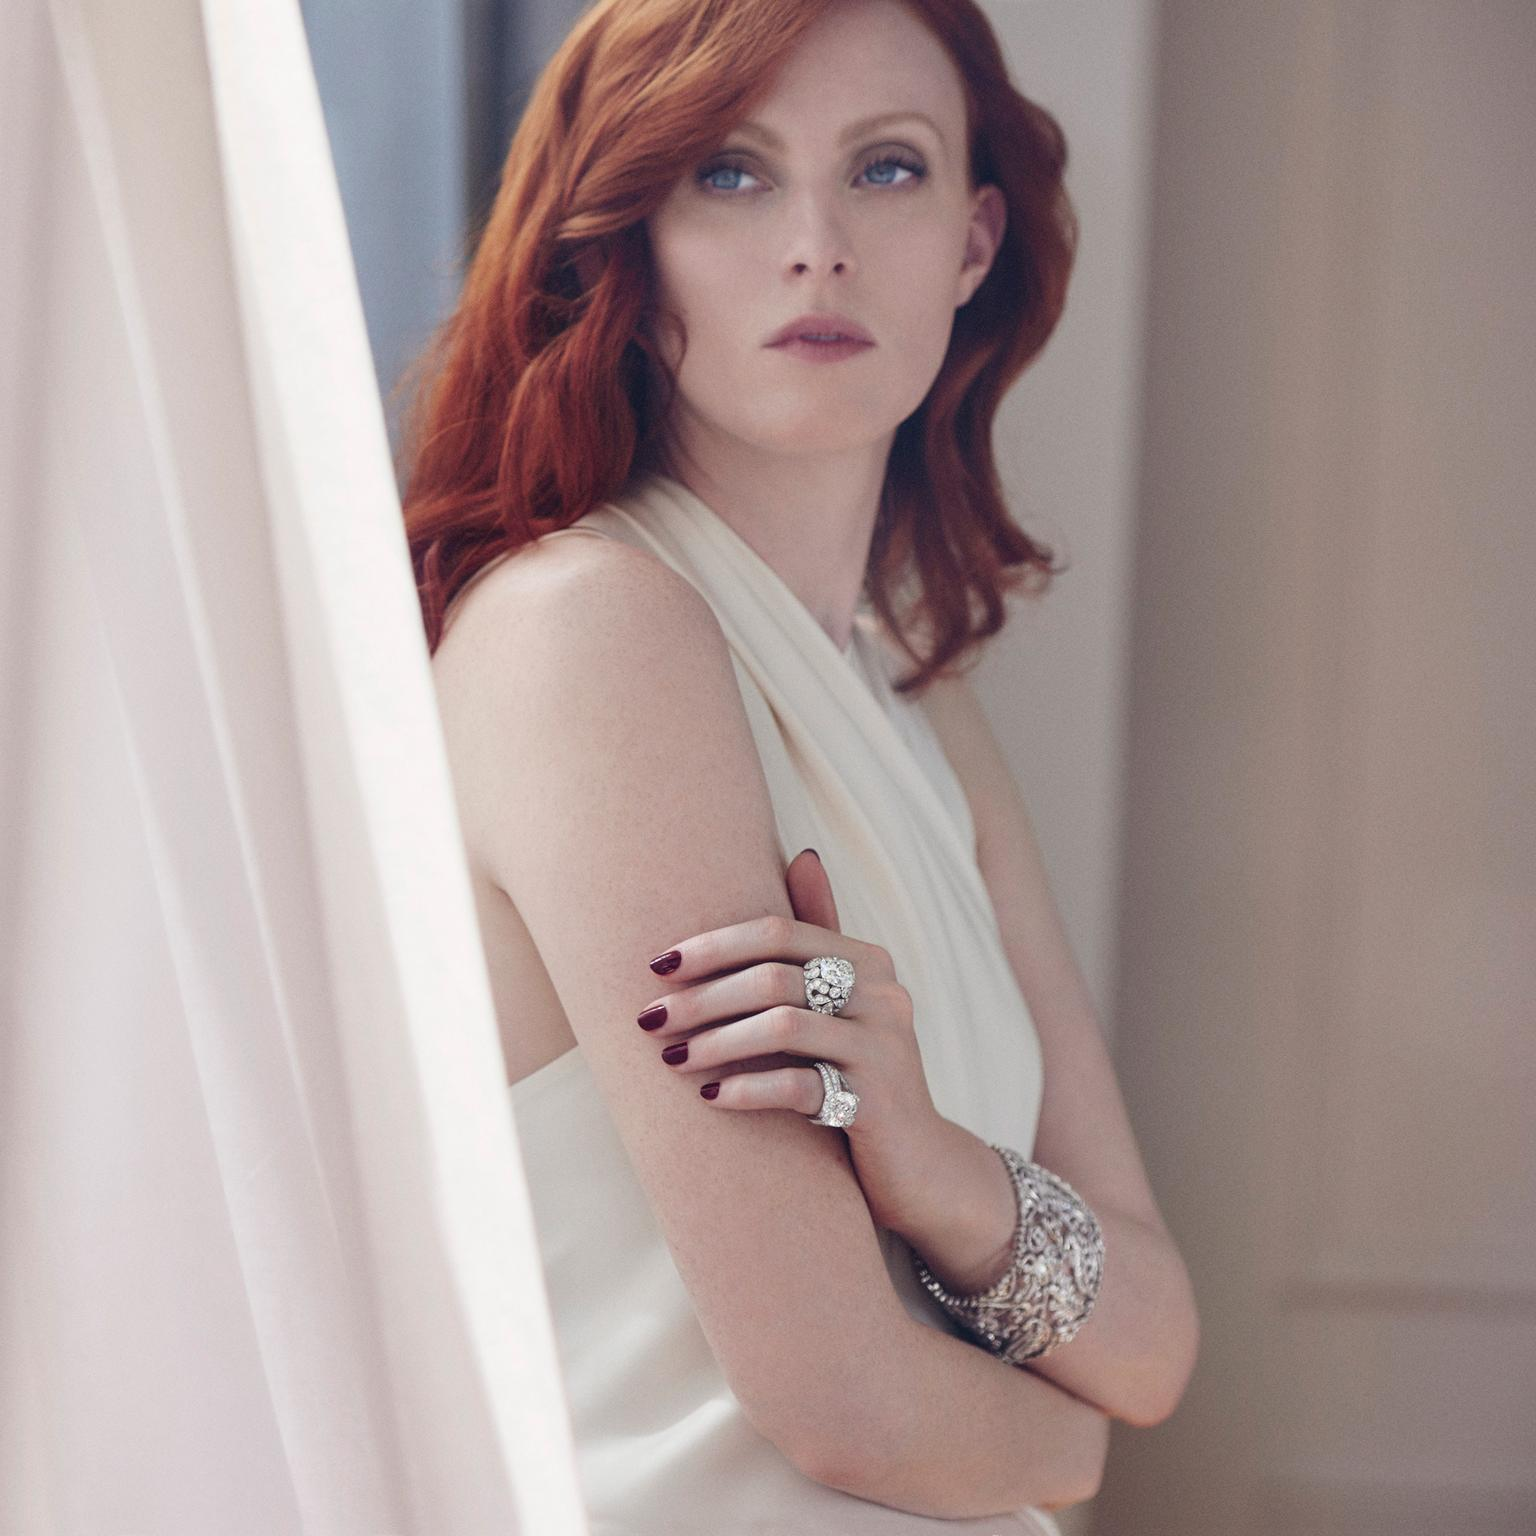 Cartier diamond jewellery worn by Karen Elson